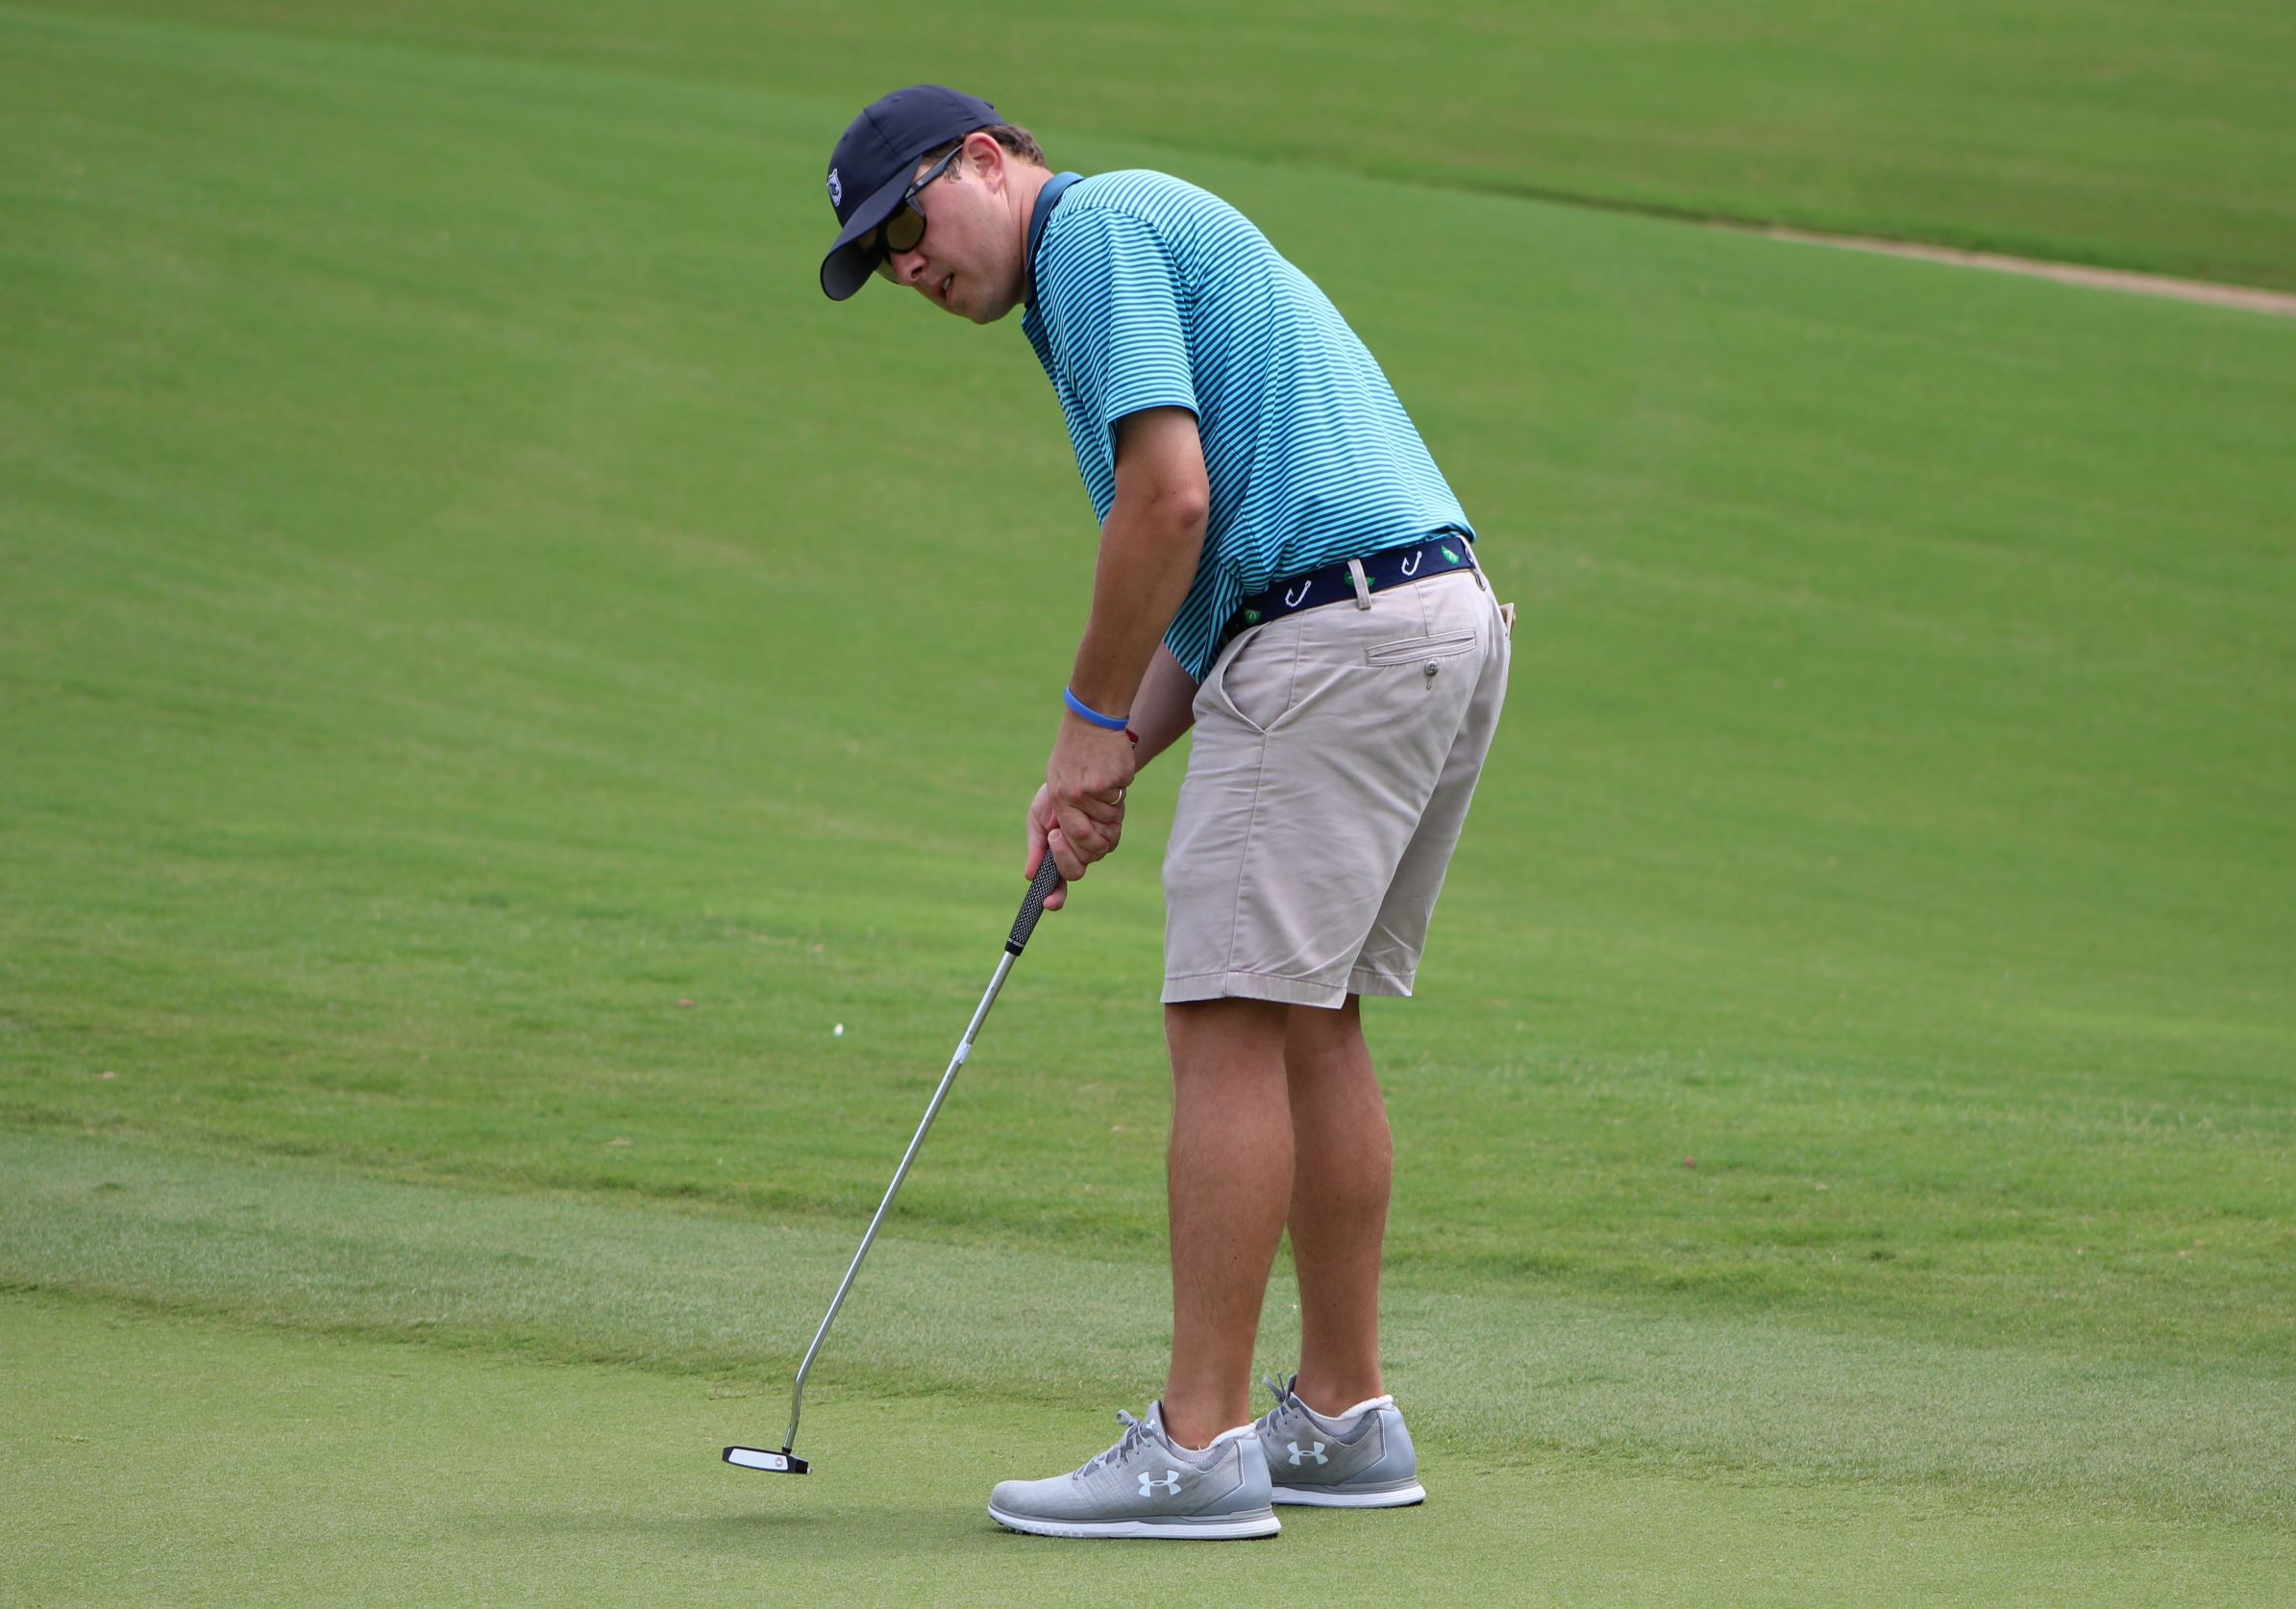 ANDREW NOTO LEADS LOUISIANA GOLF ASSOCIATION MID-AMATEUR CHAMPIONSHIP AFTER FIRST ROUND